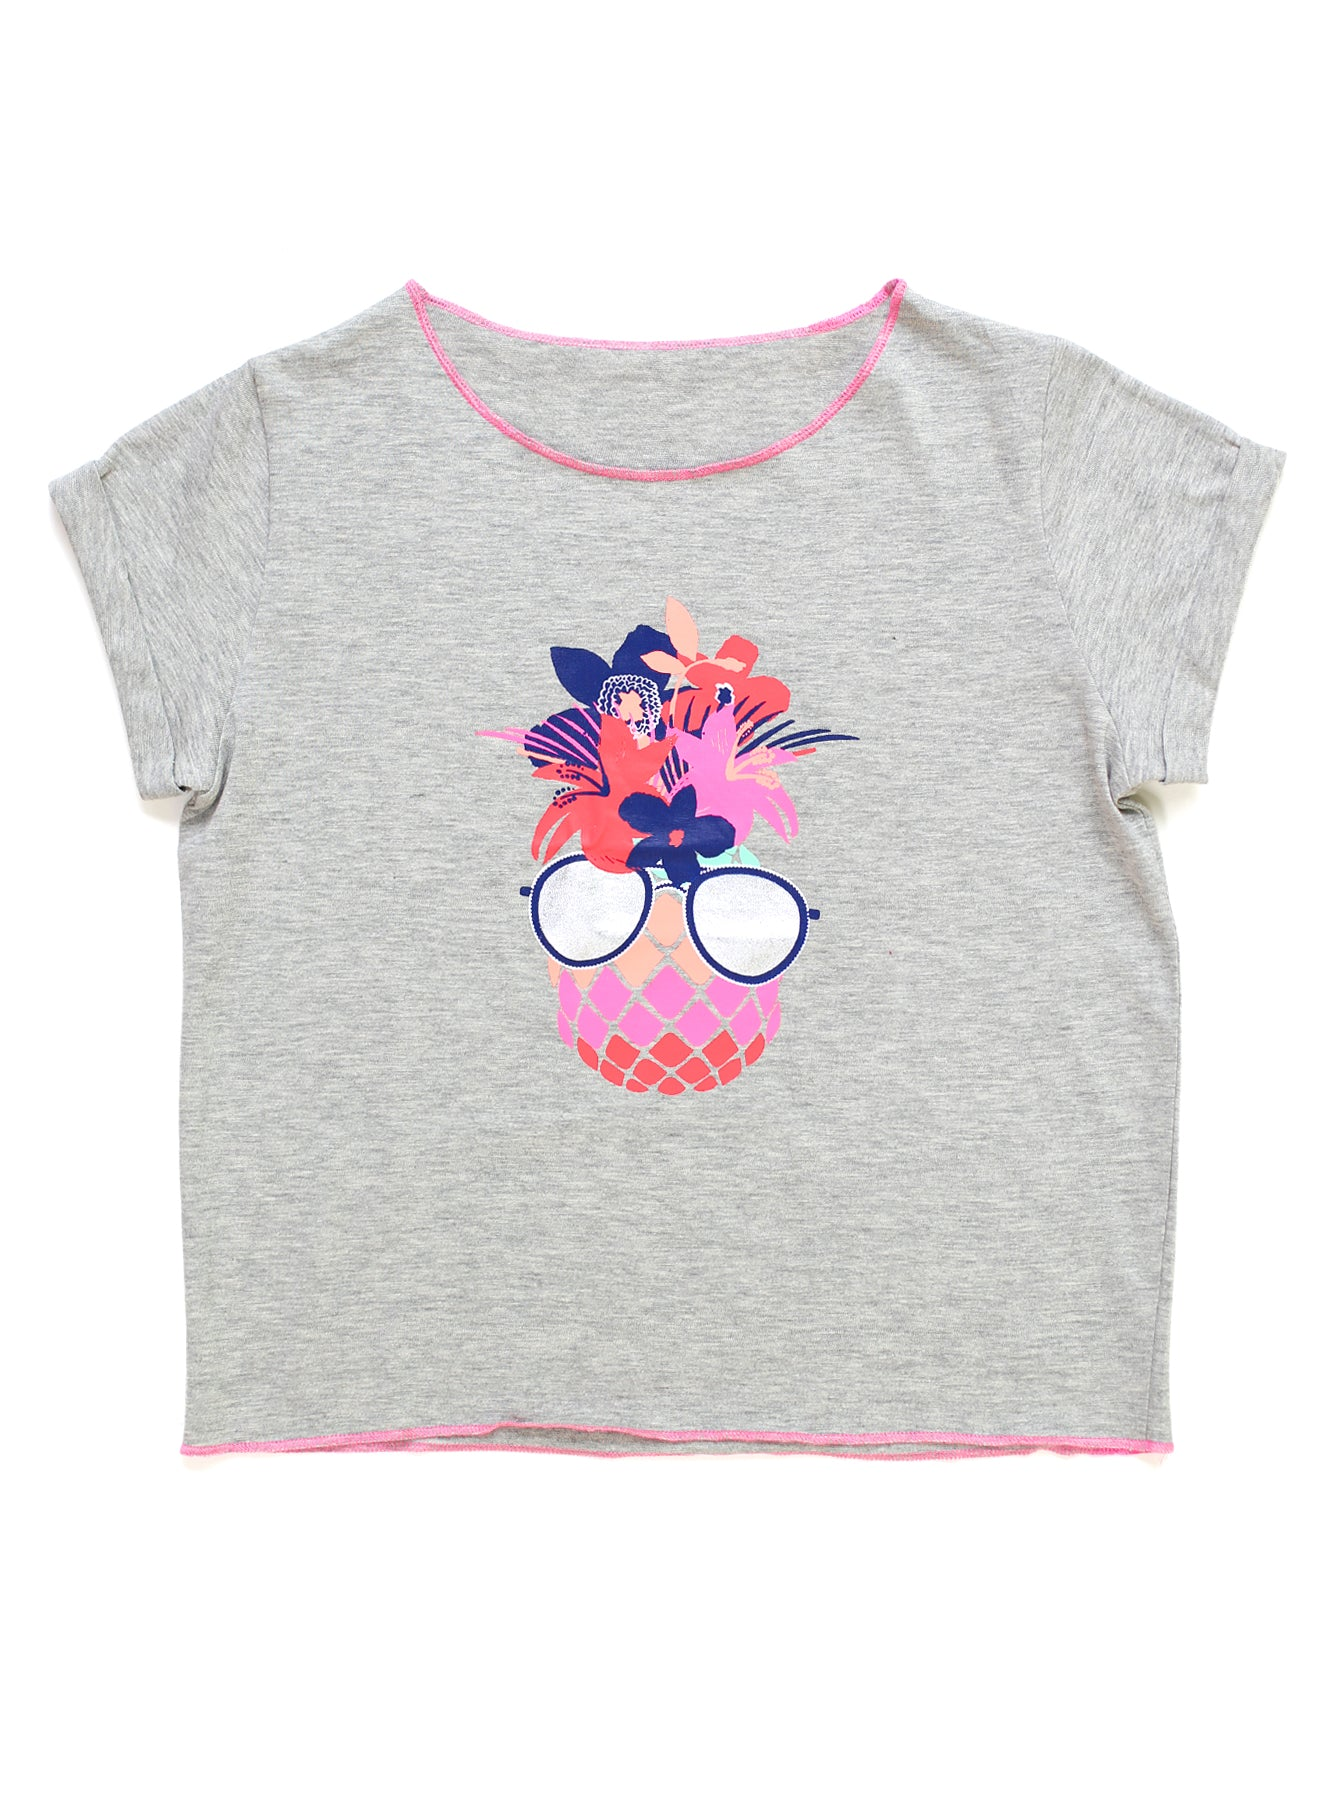 COOL FLORAL PINEAPPLE GRAPHIC TEE